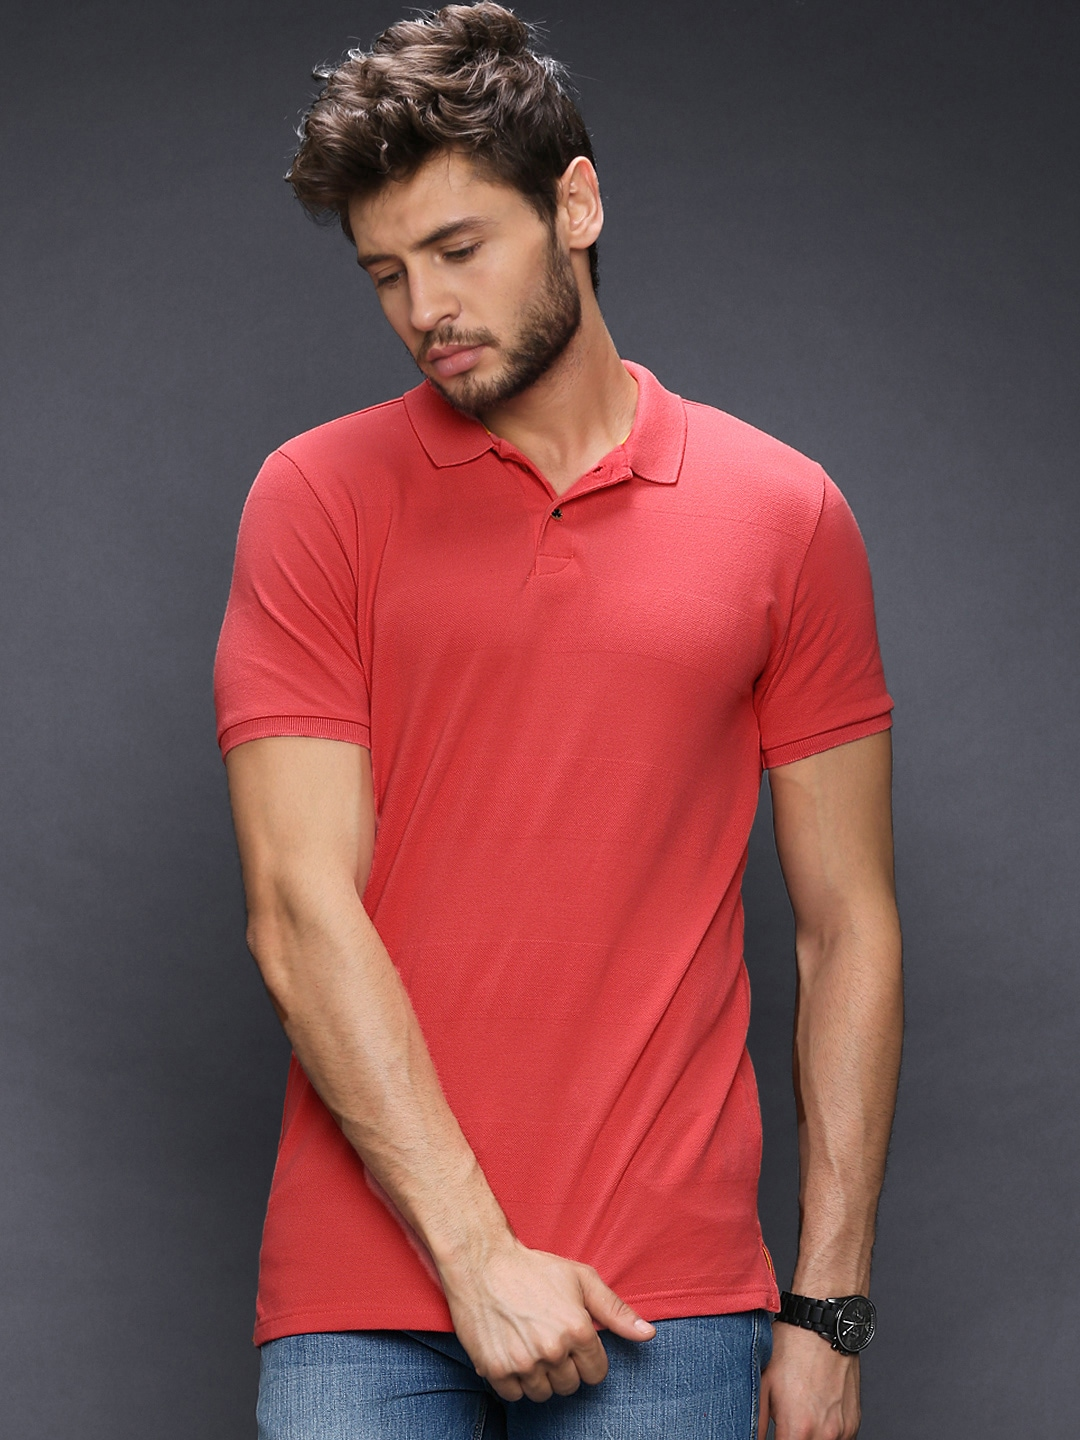 Buy Wrogn Men Coral Red Polo T Shirt 2 Apparel For Men